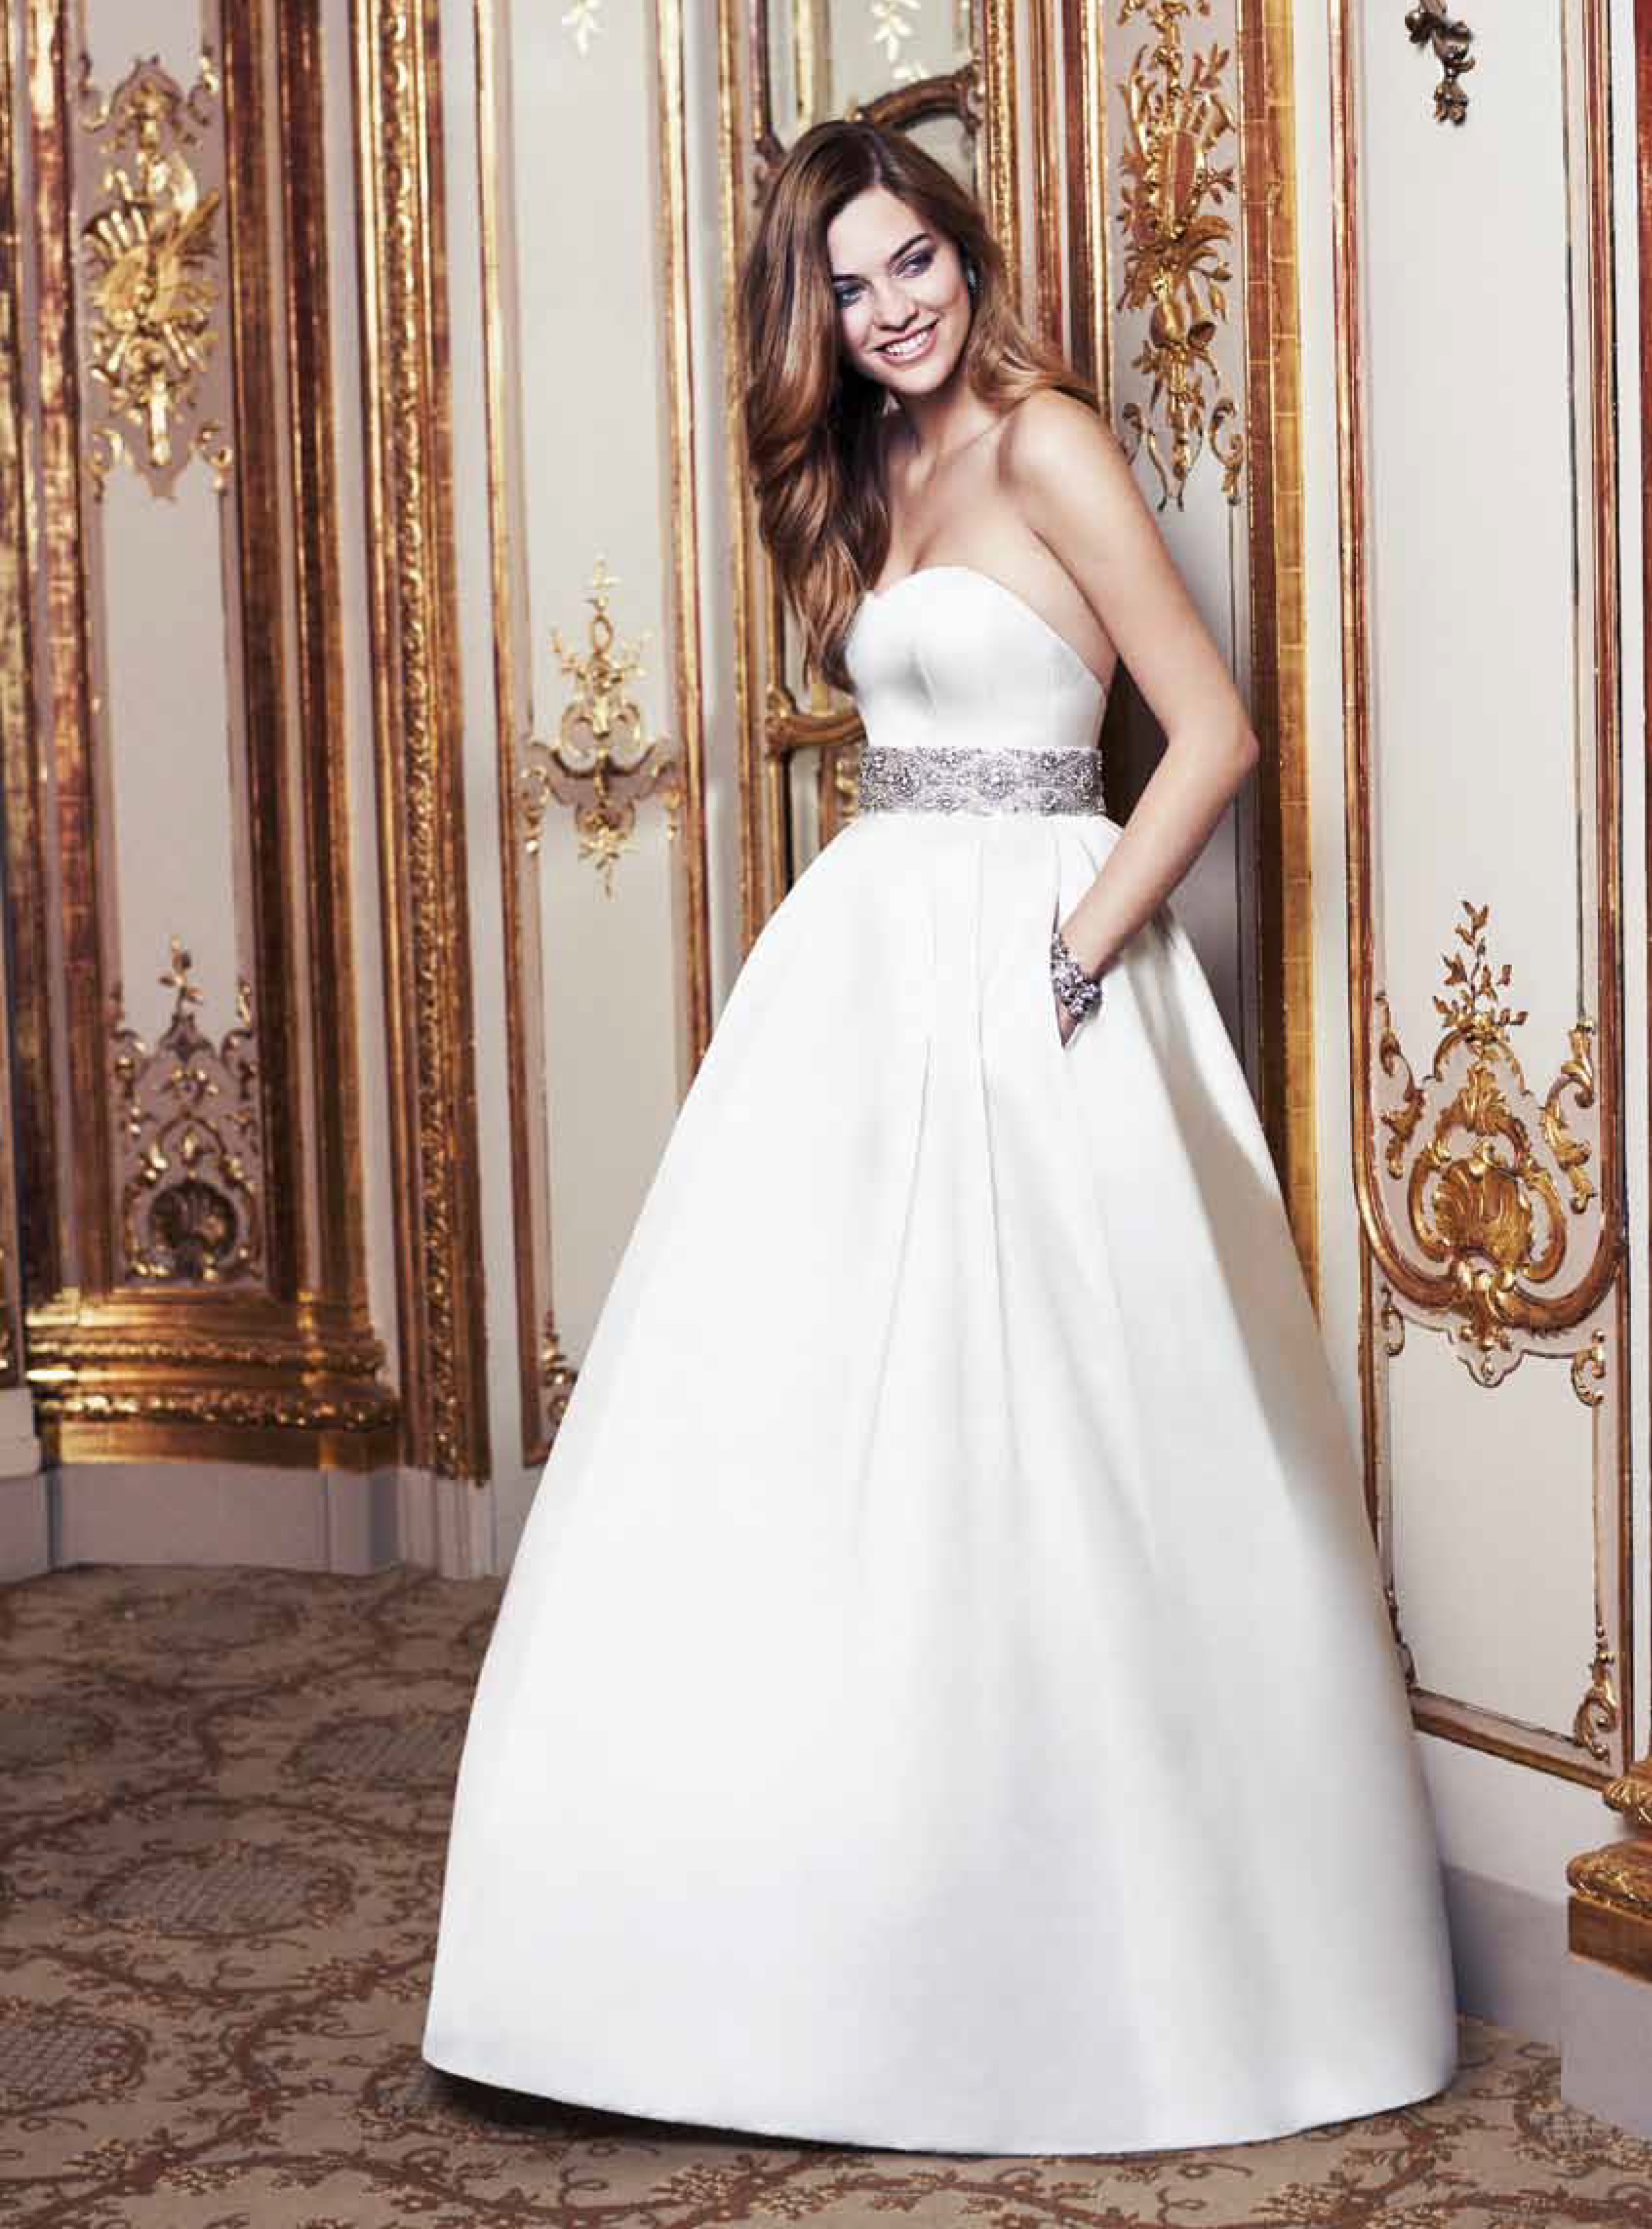 Rossini designer wedding dresses by Caroline Castigliano